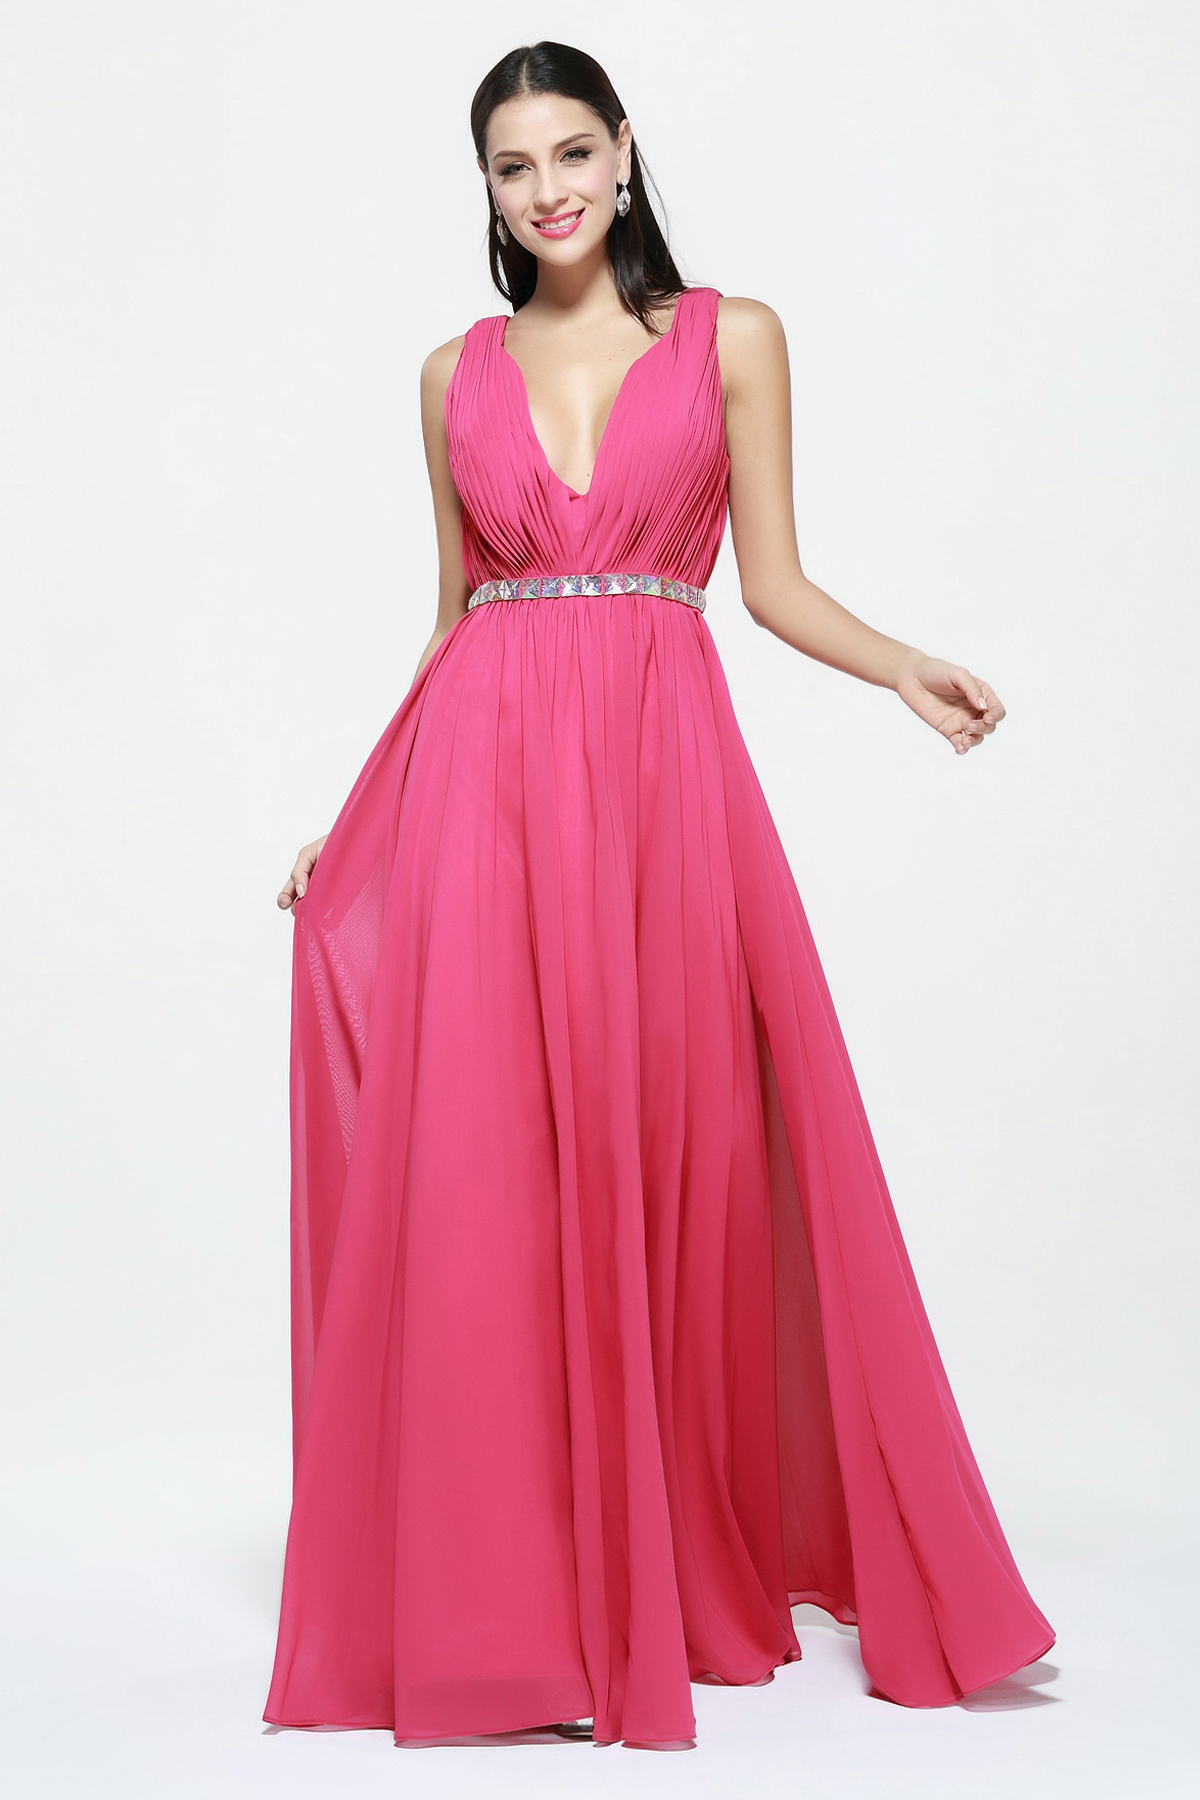 Simple V Neck Long Rose Chiffon Prom Dress